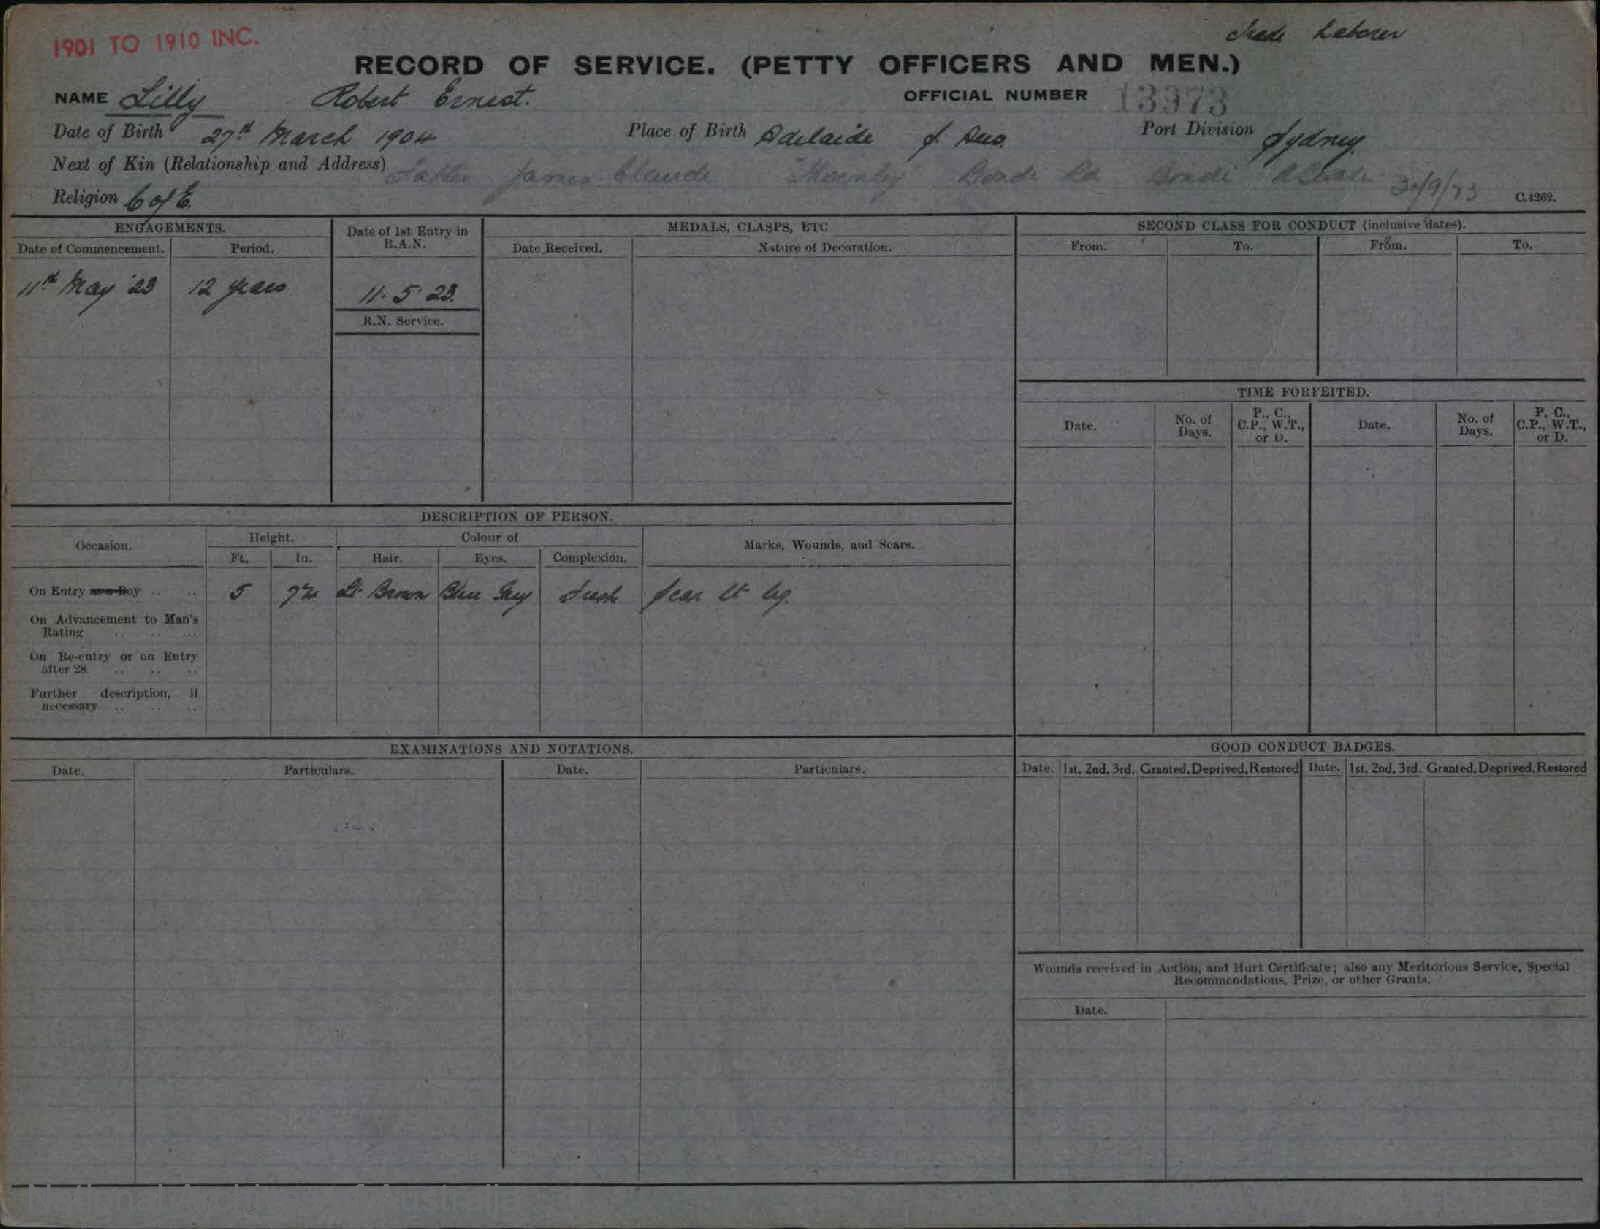 LILLY ROBERT ERNEST : Service Number - 13973 : Date of birth - 27 Mar 1904 : Place of birth - ADELAIDE SA : Place of enlistment - SYDNEY : Next of Kin - JAMES